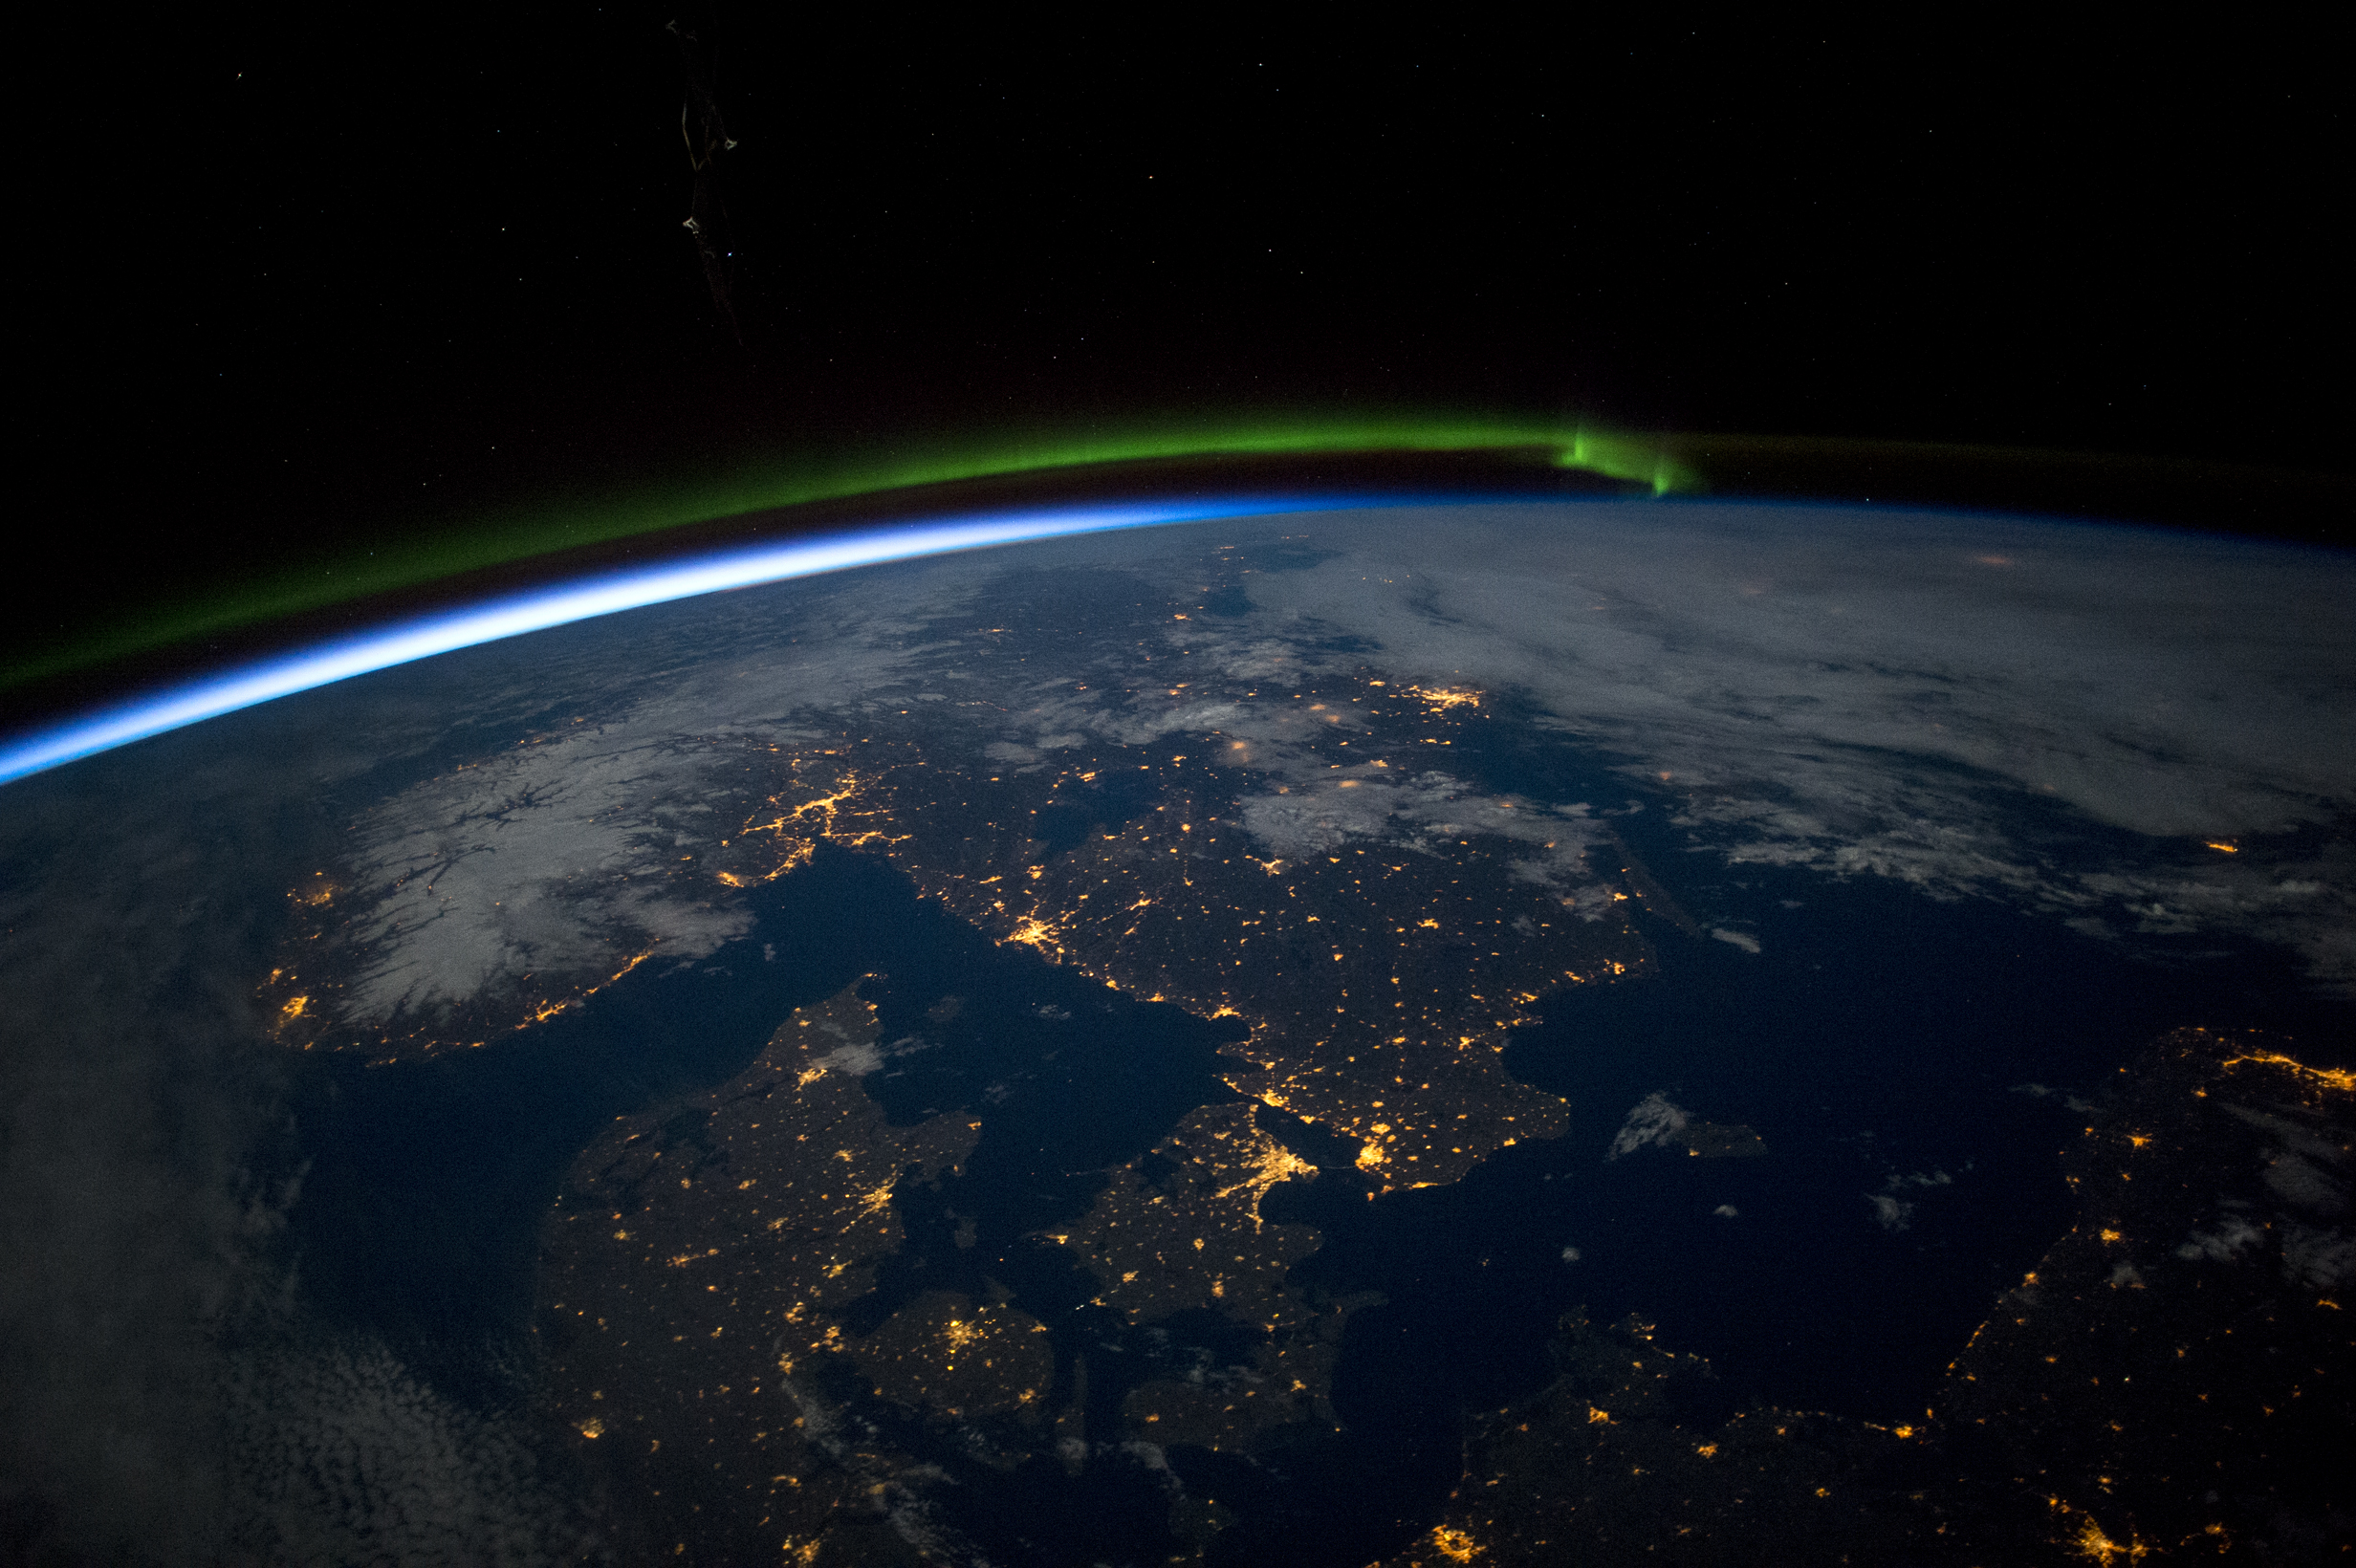 Earth Pictures: Iconic Images of Earth from Space